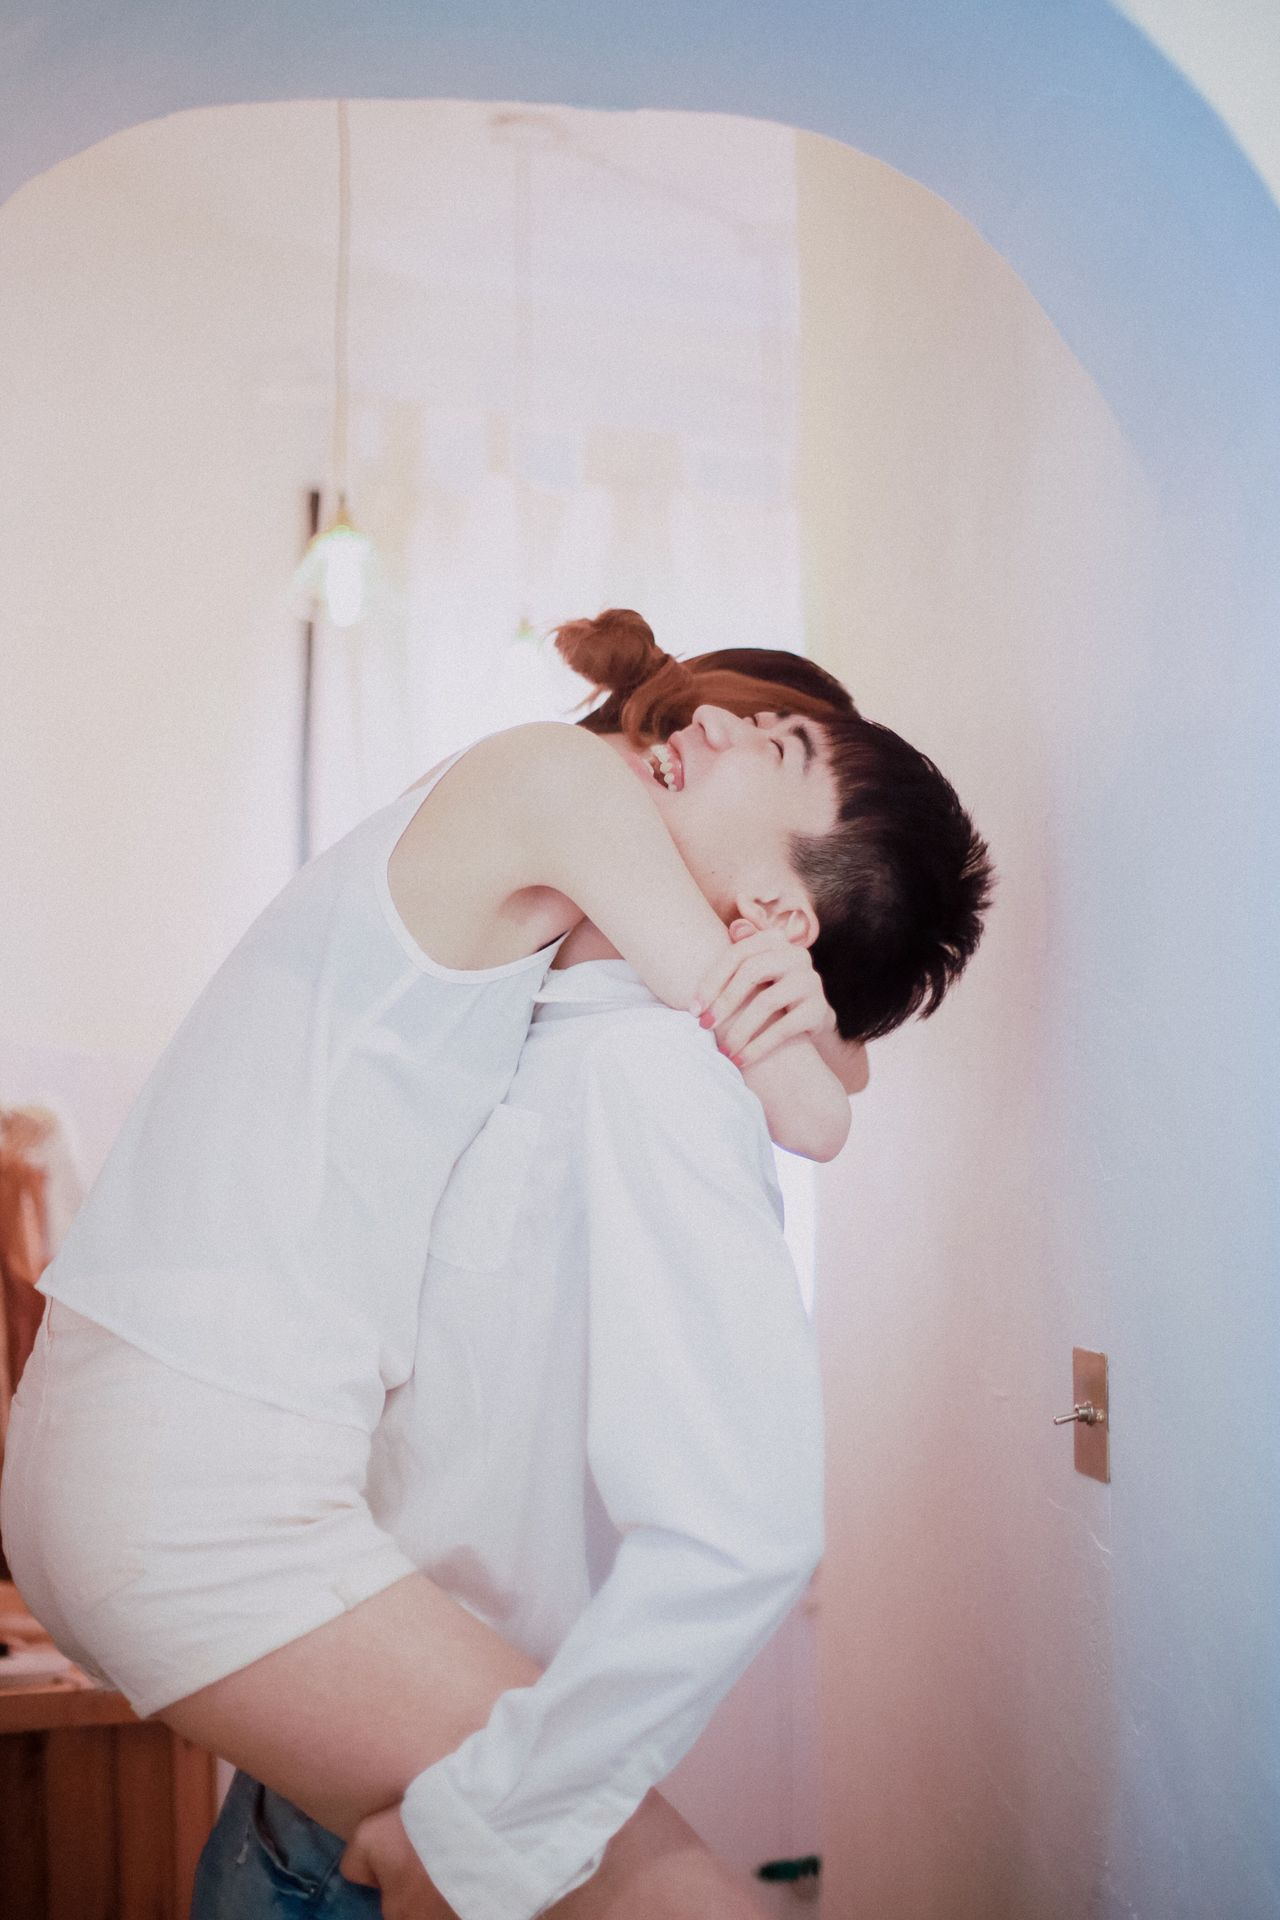 Big laugh Laughing Hugging Lovers Couple Younglove Sweetness Happiness Snap